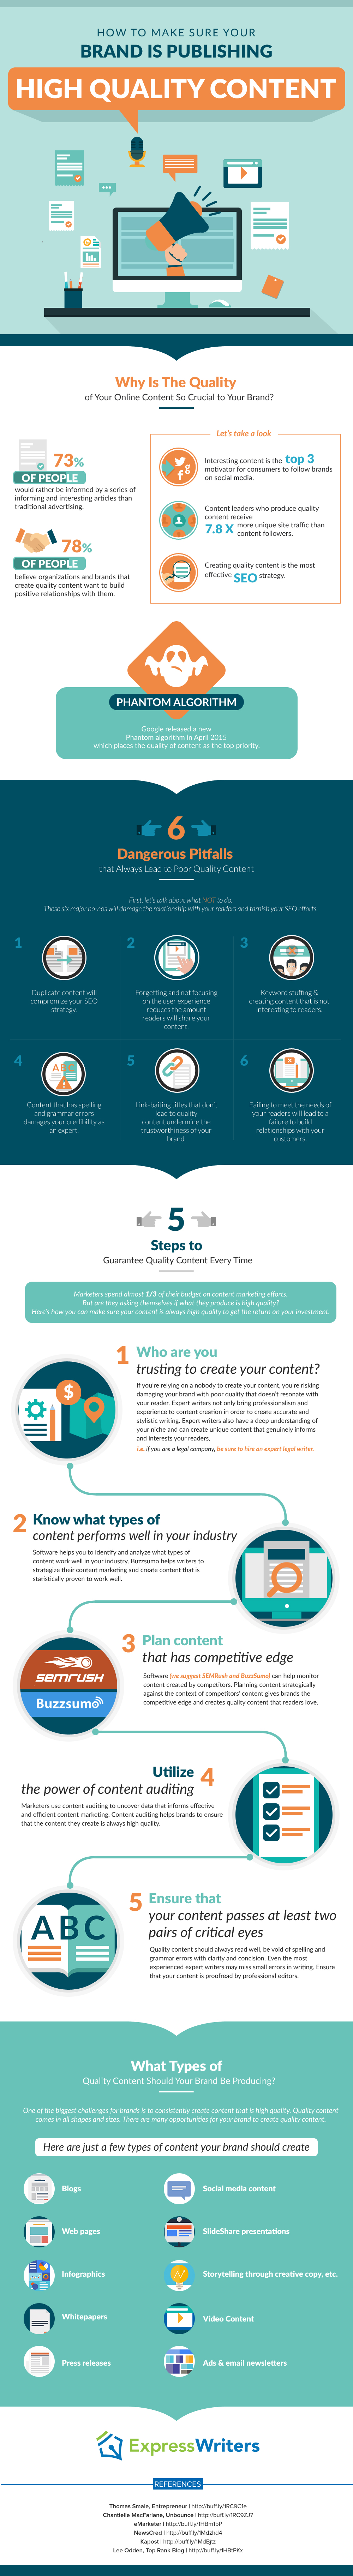 How To Make Sure Your Brand Is Publishing Quality Content infographic